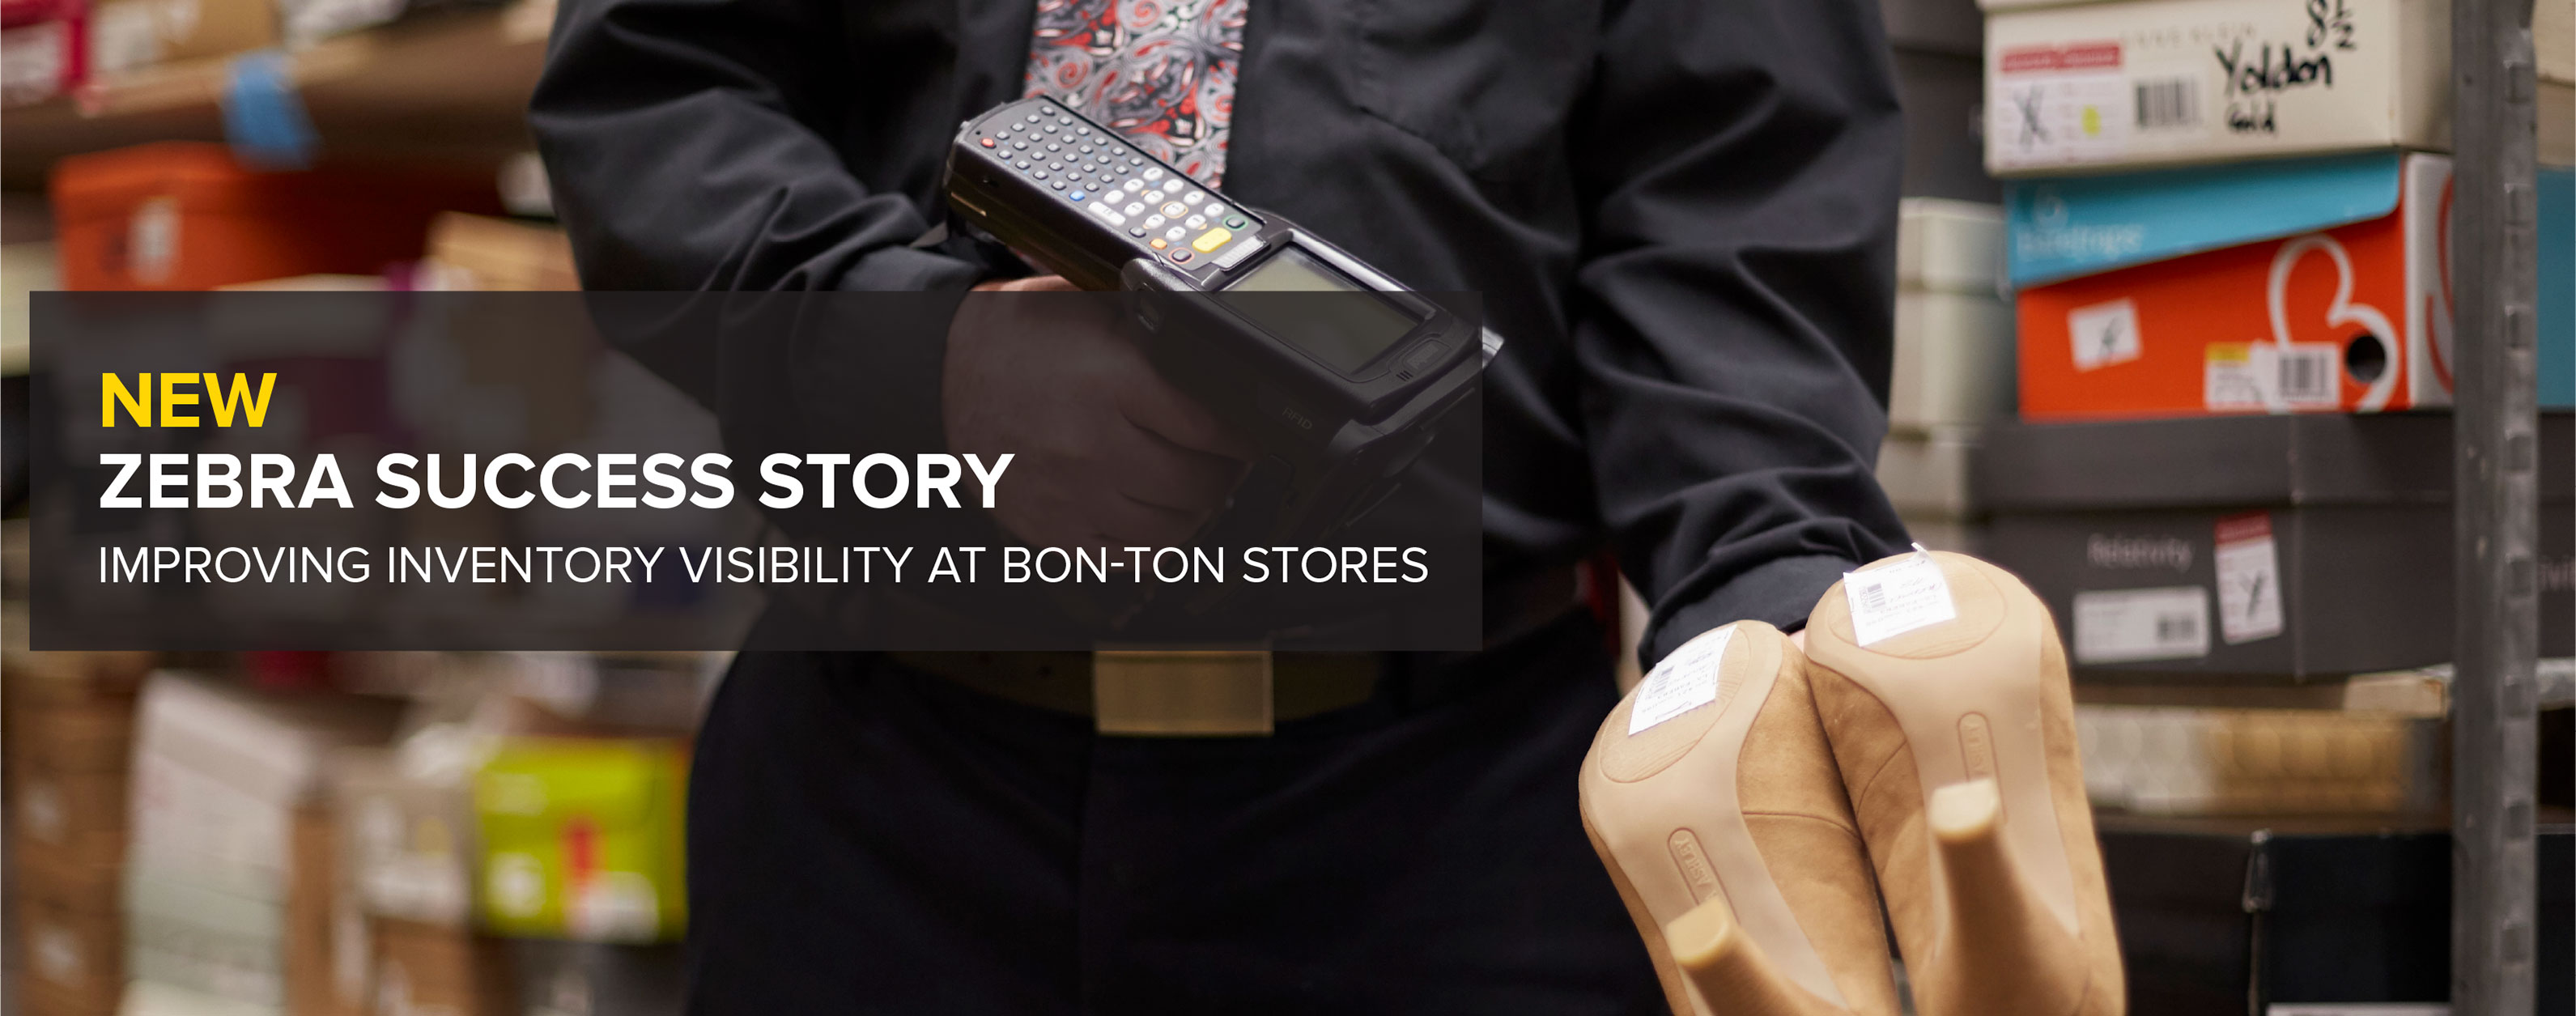 New Zebra Success Story – Improving Inventory Visibility at Bon-Ton Stores